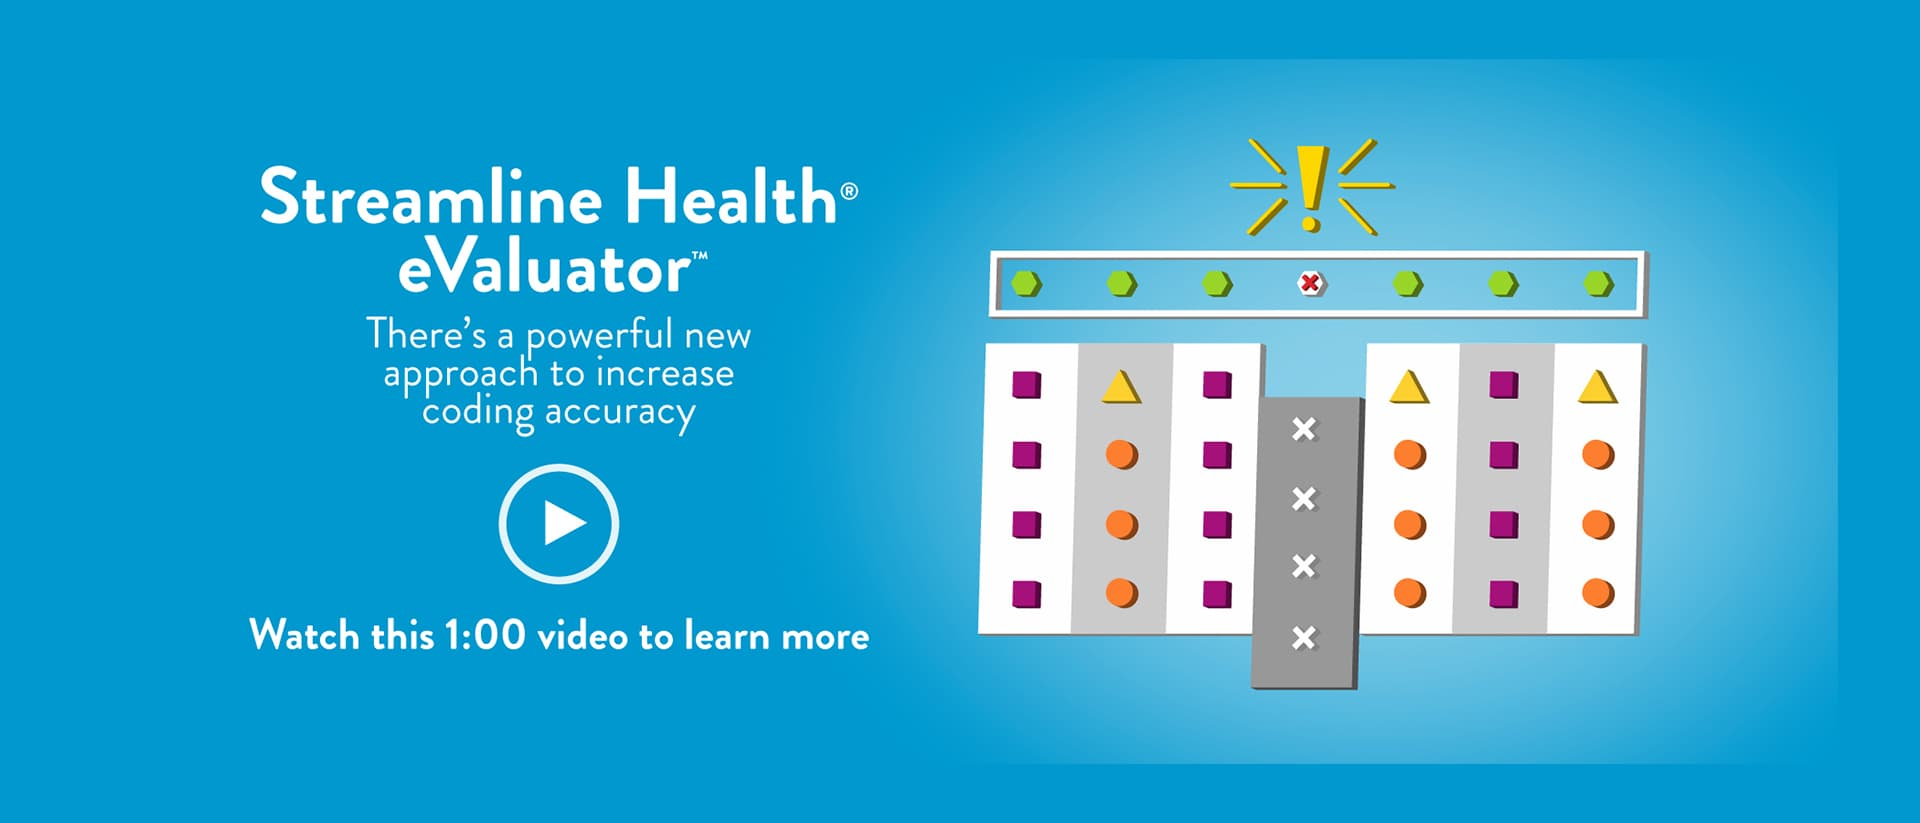 Increase Coding Accuracy with Streamline Health eValuator